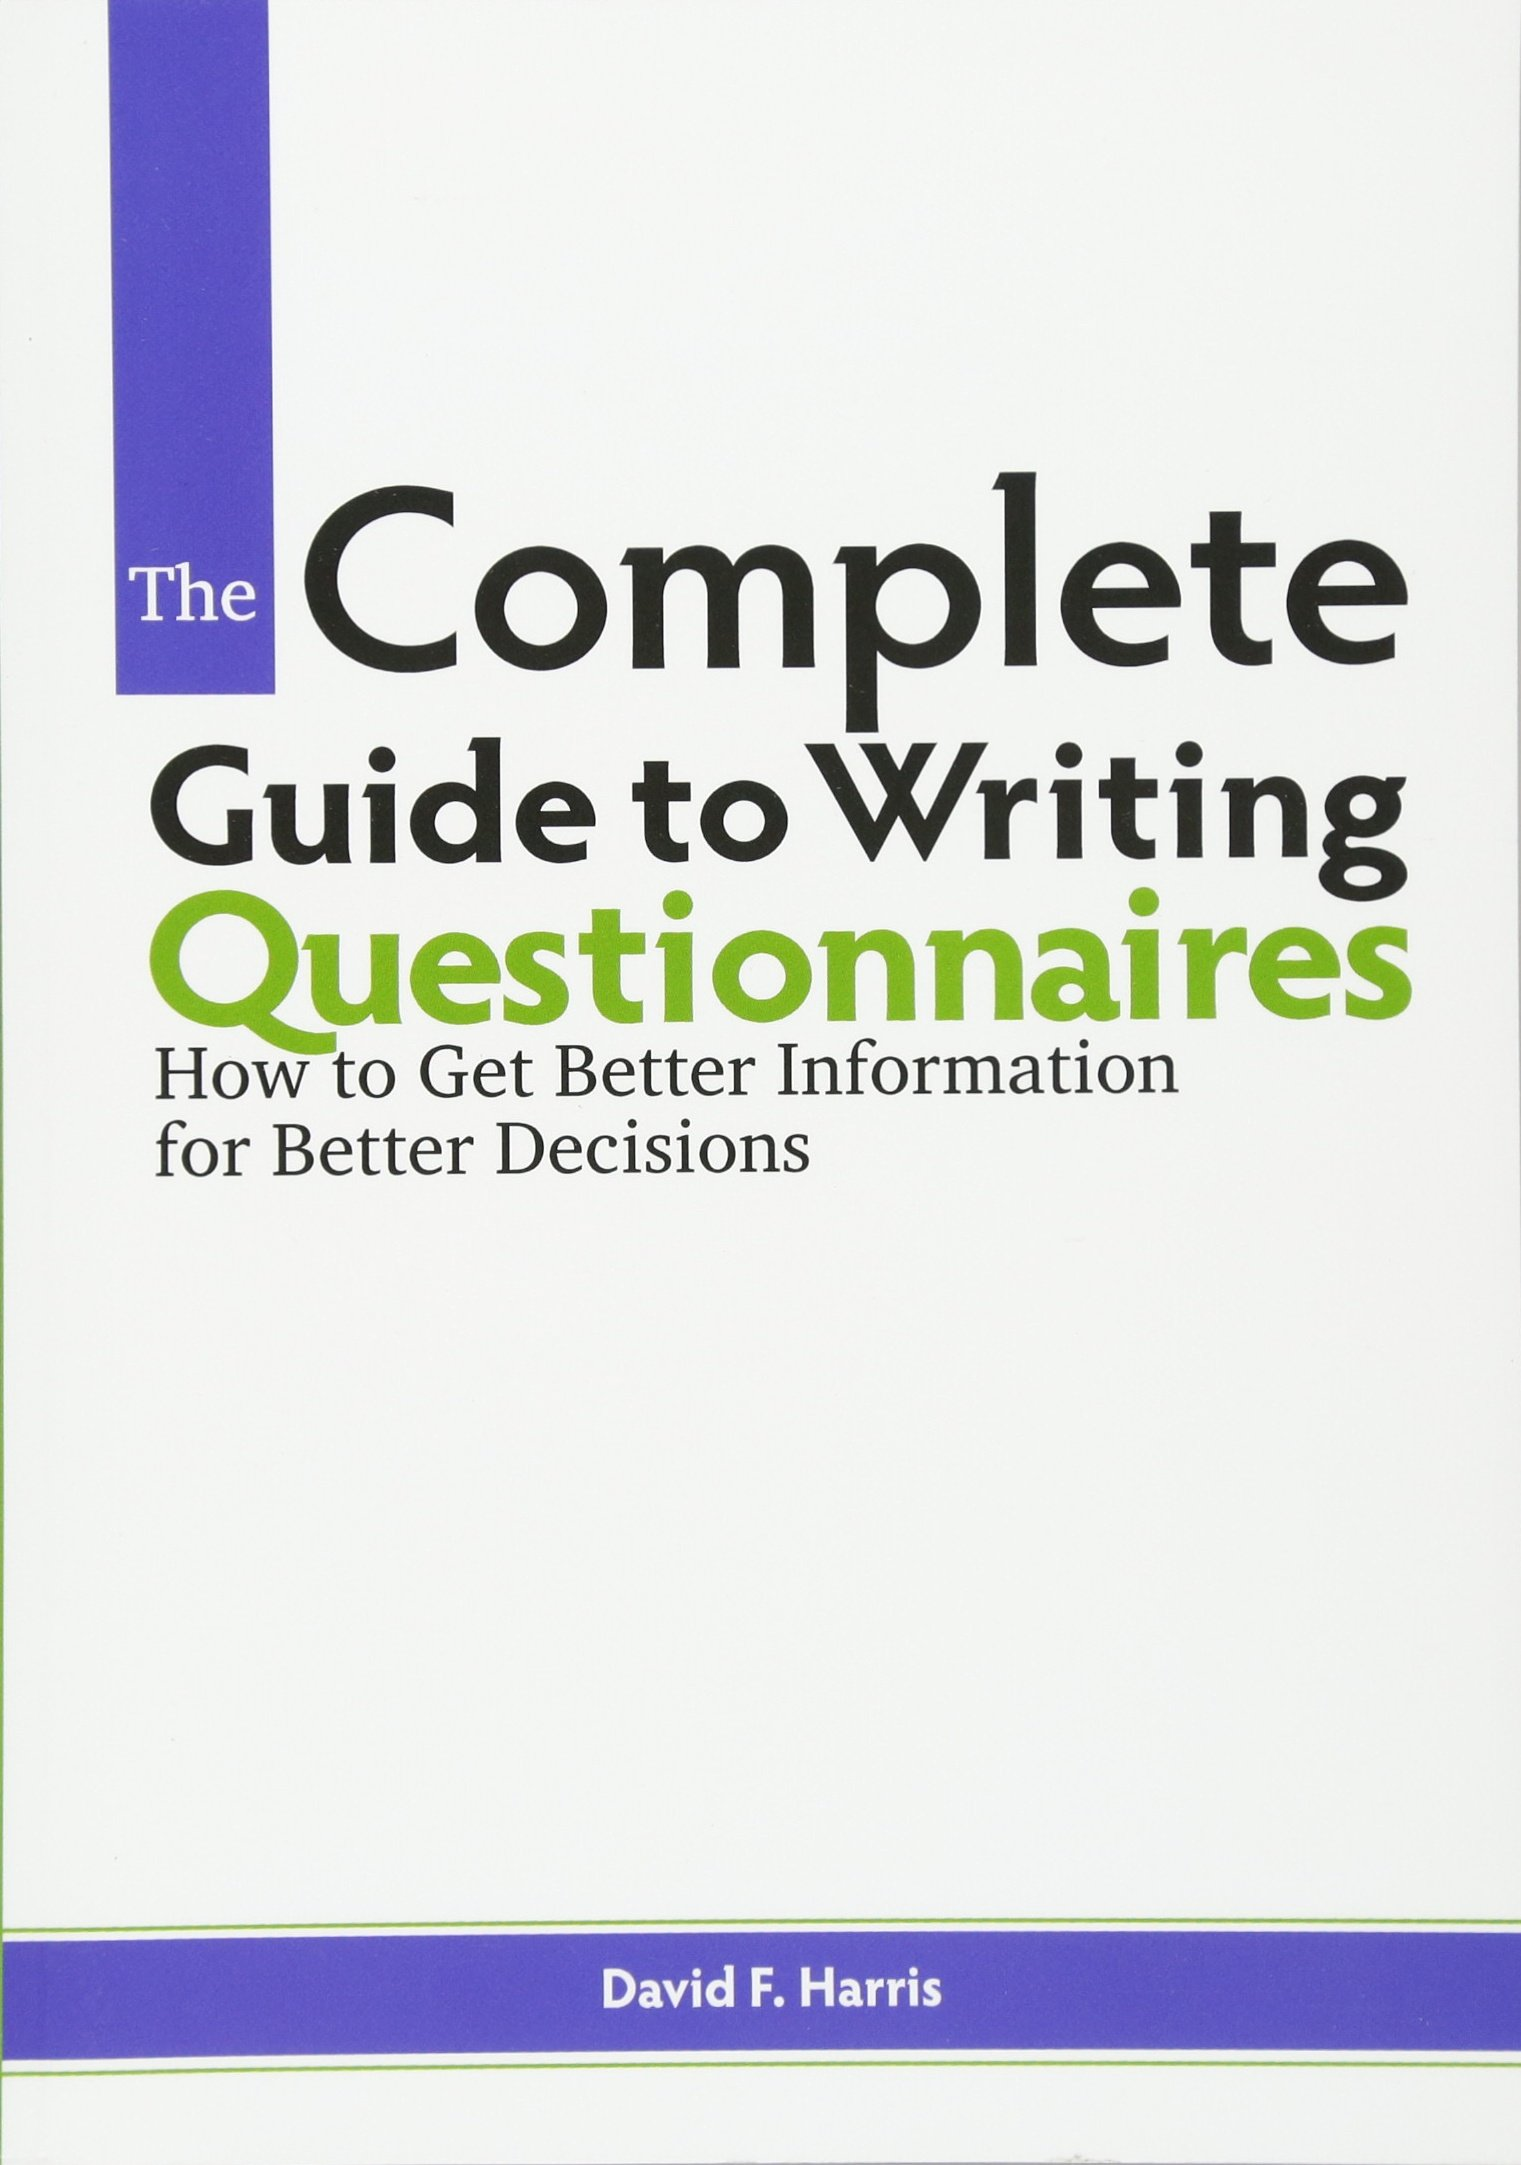 The Complete Guide to Writing Questionnaires: How to Get Better Information  for Better Decisions: David F. Harris: 9780615917672: Amazon.com: Books